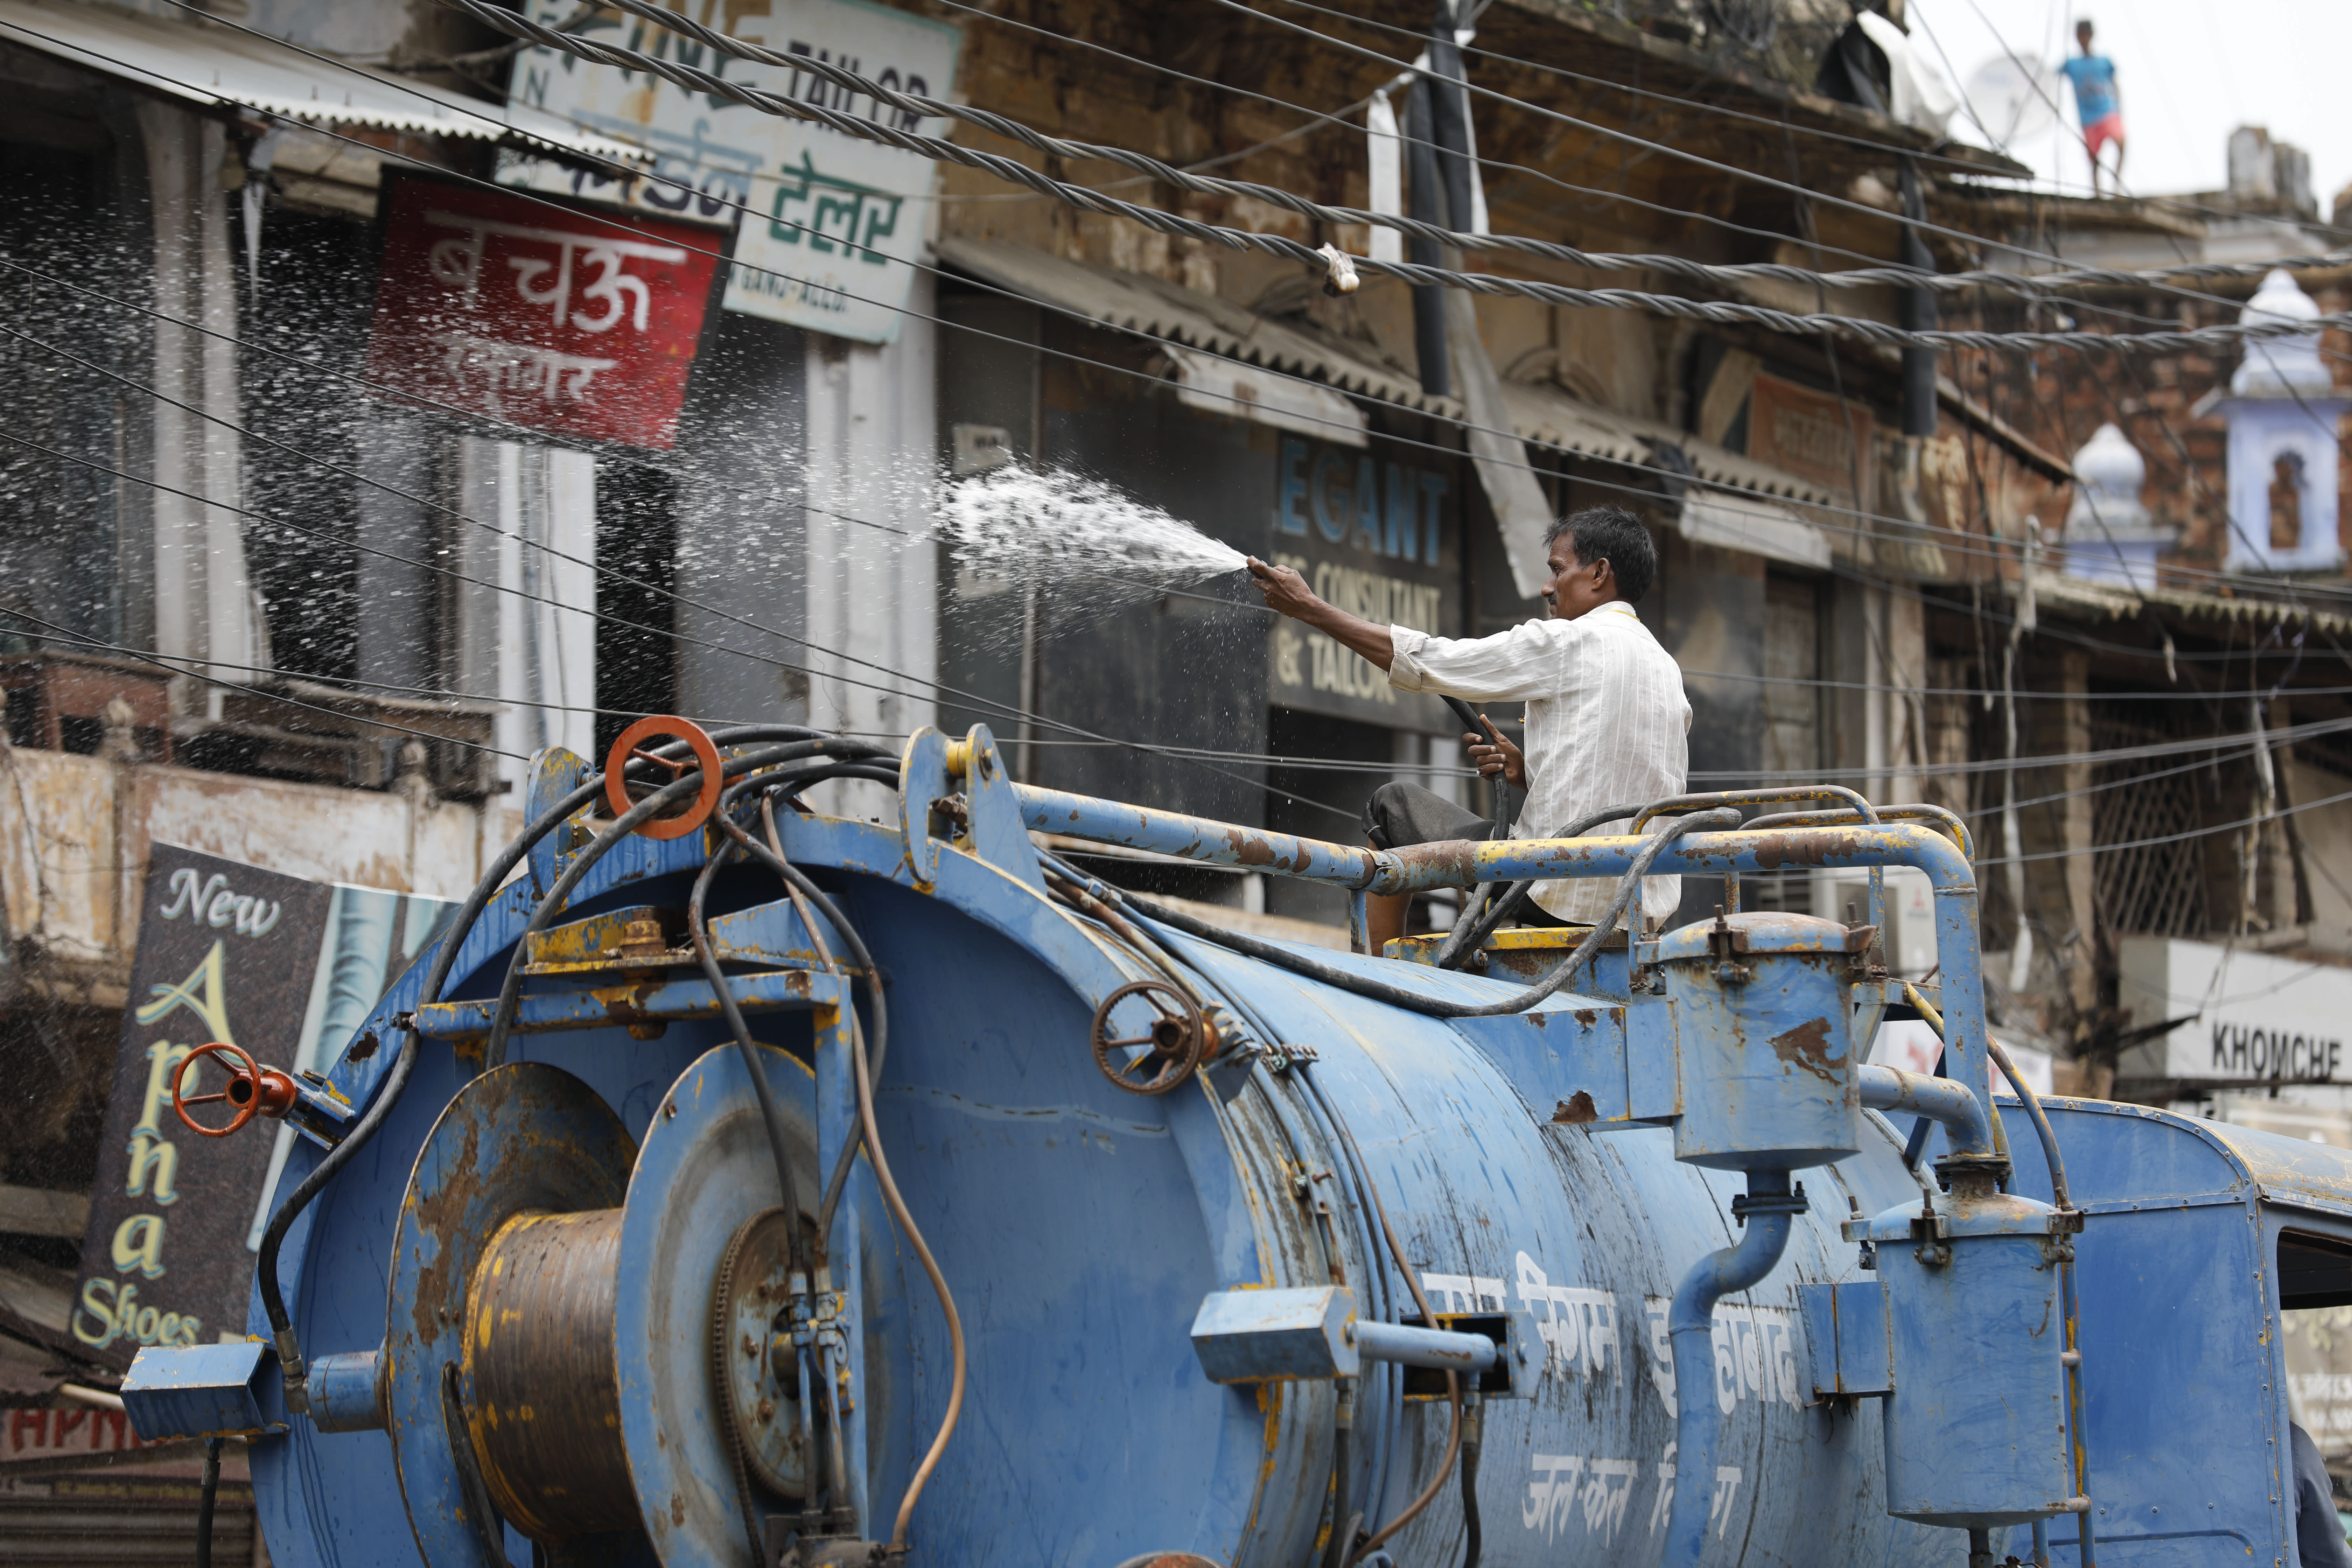 A municipal worker disinfects an area amid rising COVID-19 cases in Prayagraj, India, Saturday, July 11, 2020. In just three weeks, India went from the world's sixth worst-affected country by the coronavirus to the third, according to a tally by Johns Hopkins University. India's fragile health system was bolstered during a stringent monthslong lockdown but could still be overwhelmed by an exponential rise in infections. (AP Photo/Rajesh Kumar Singh)